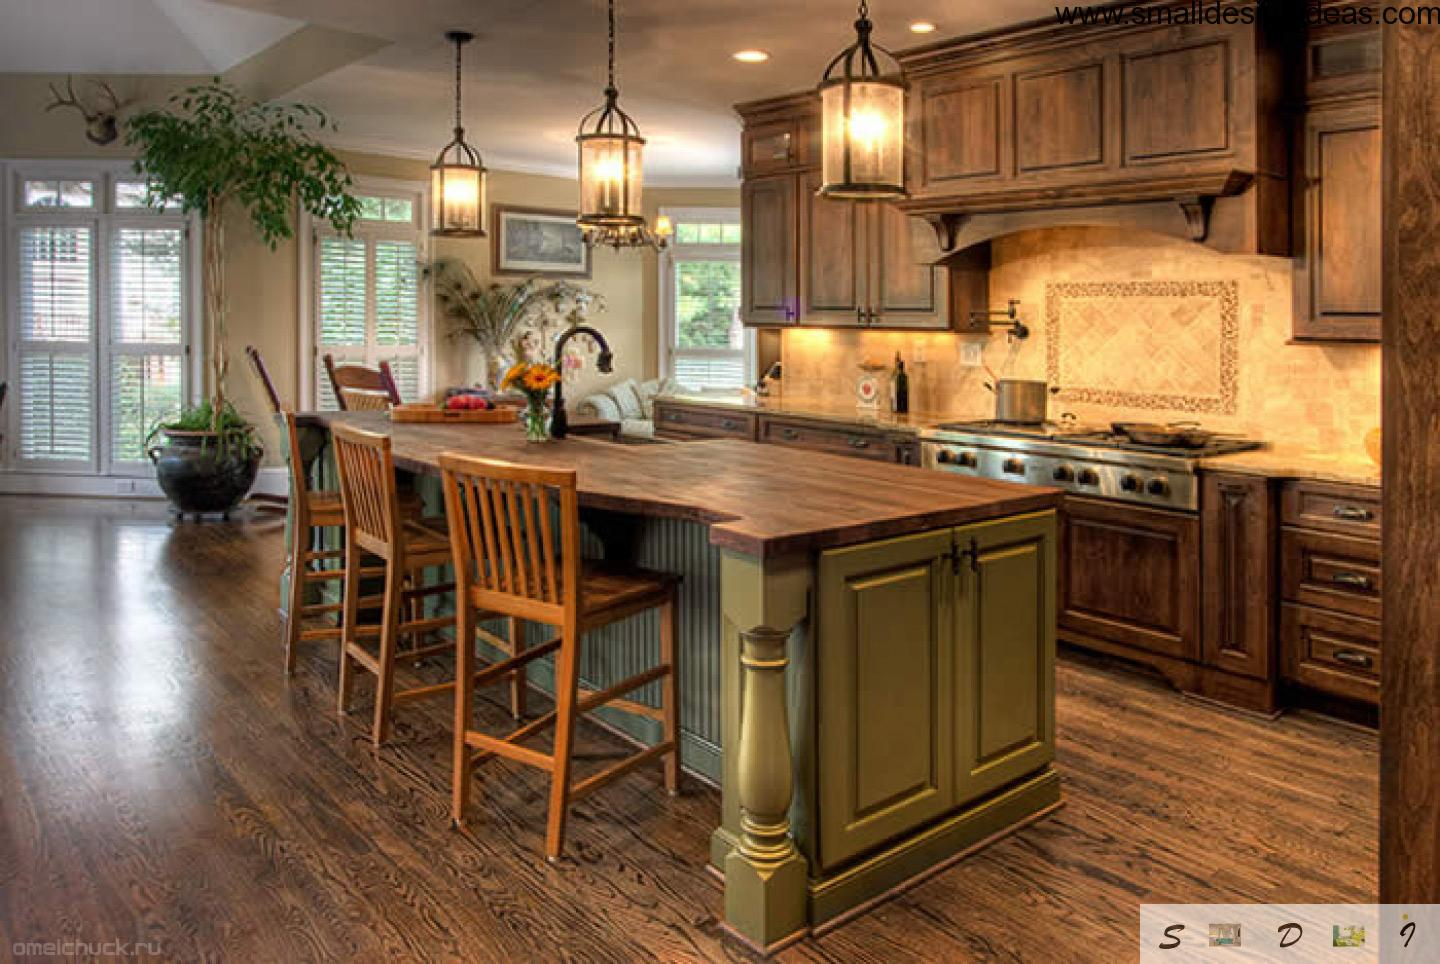 Country kitchen design - Country style kitchen cabinets design ...